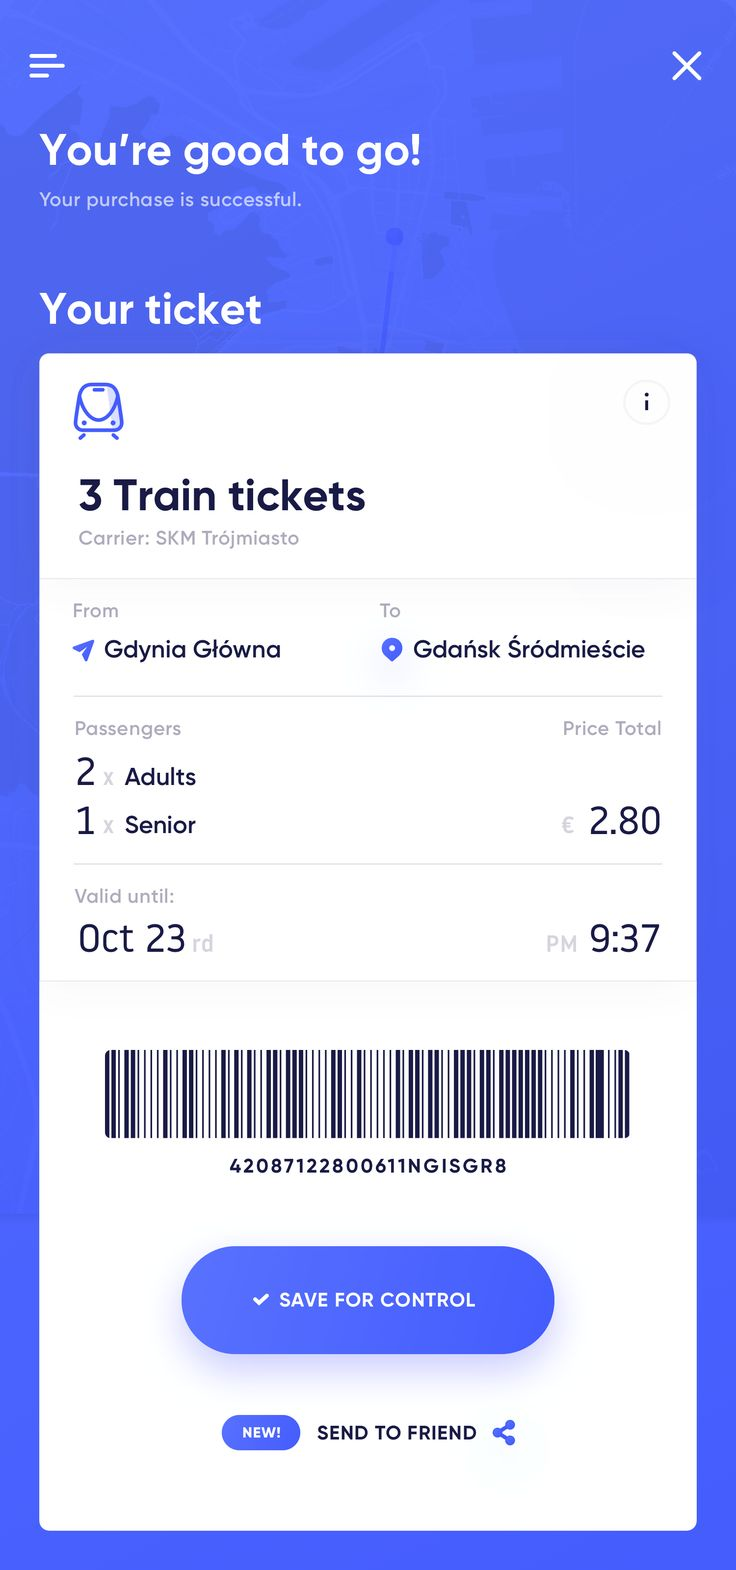 Your ticket screen